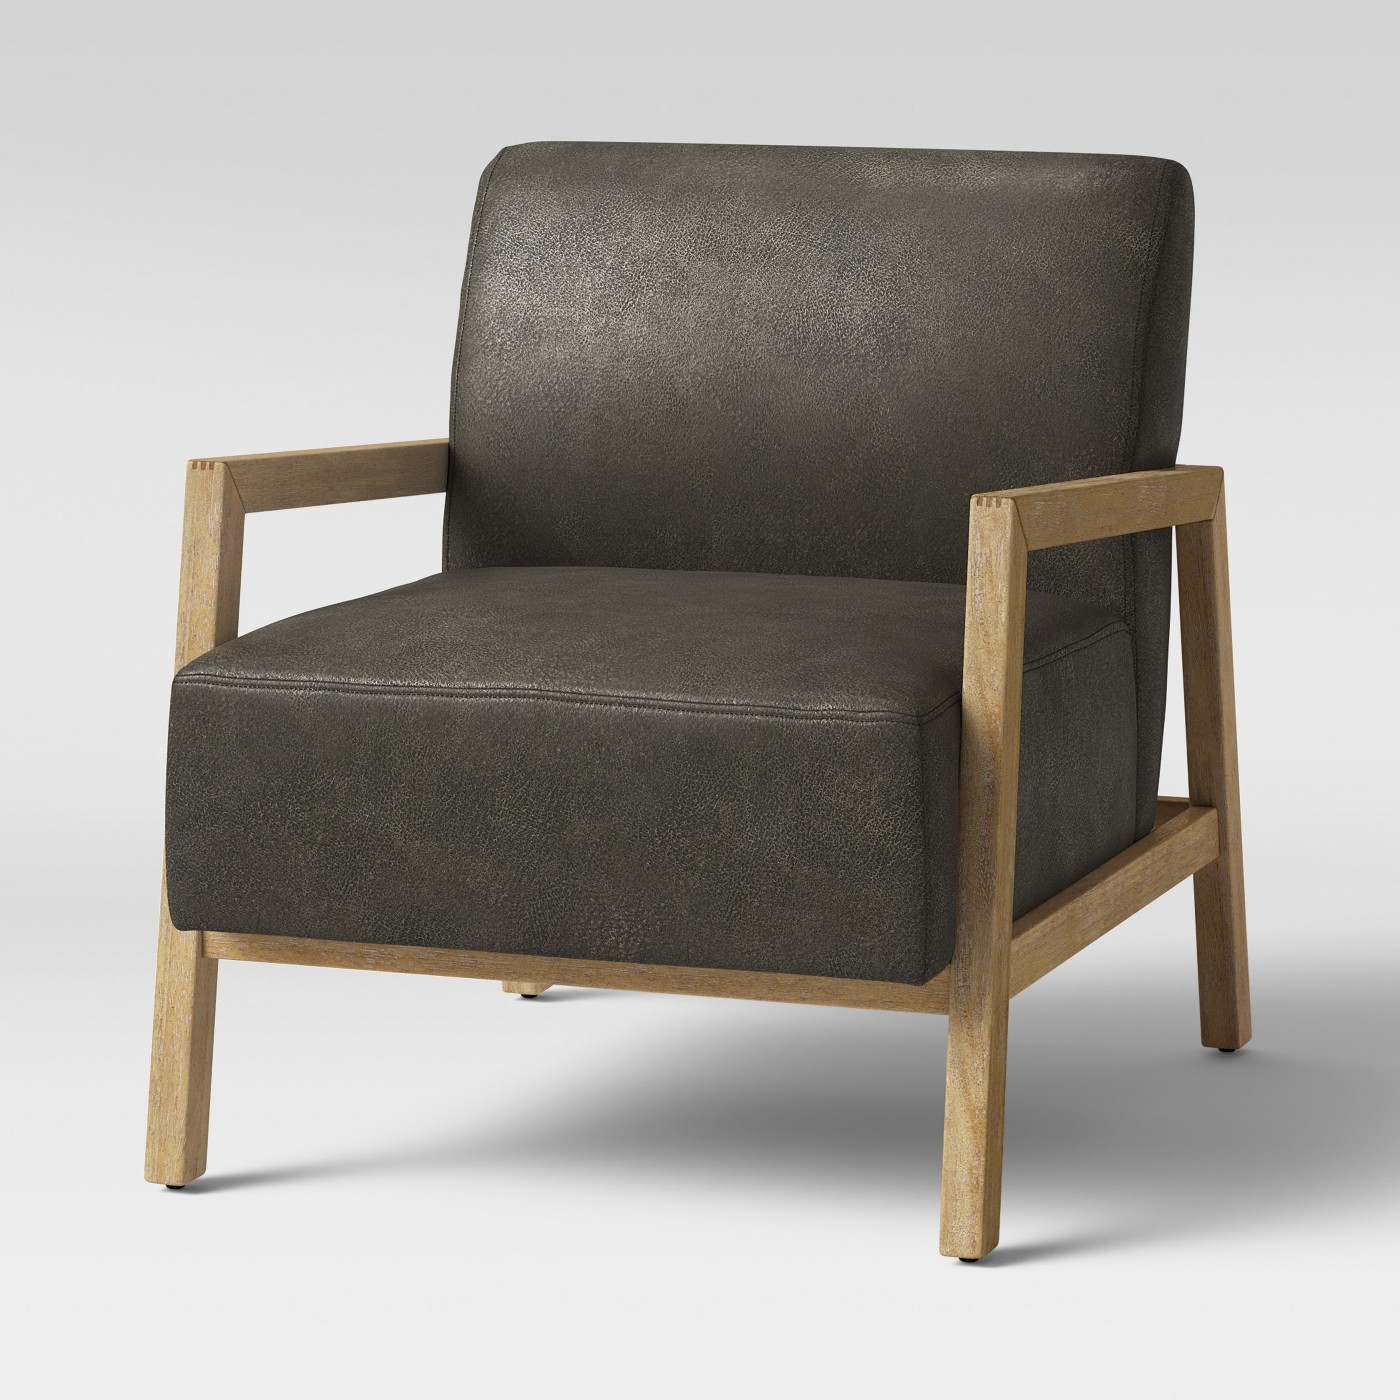 Bedford Rustic Wood Arm Chair